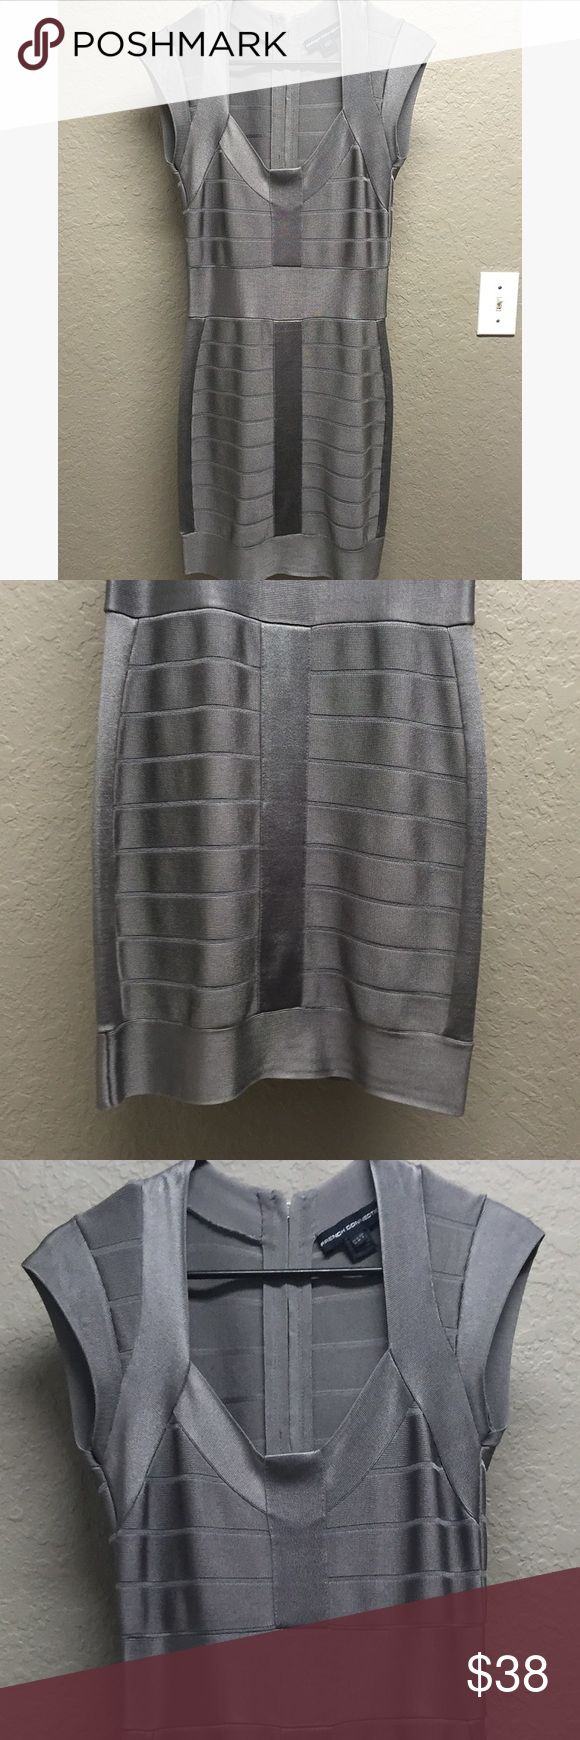 French Connection UK Bandage Bodycon Dress Silver Very flattering French Connection bandage bodycon dress in size 6. Authentic and purchased from Bloomingdales. Material is 79% Rayon, 18% Nylon, 3% Spandex. French Connection Dresses Mini